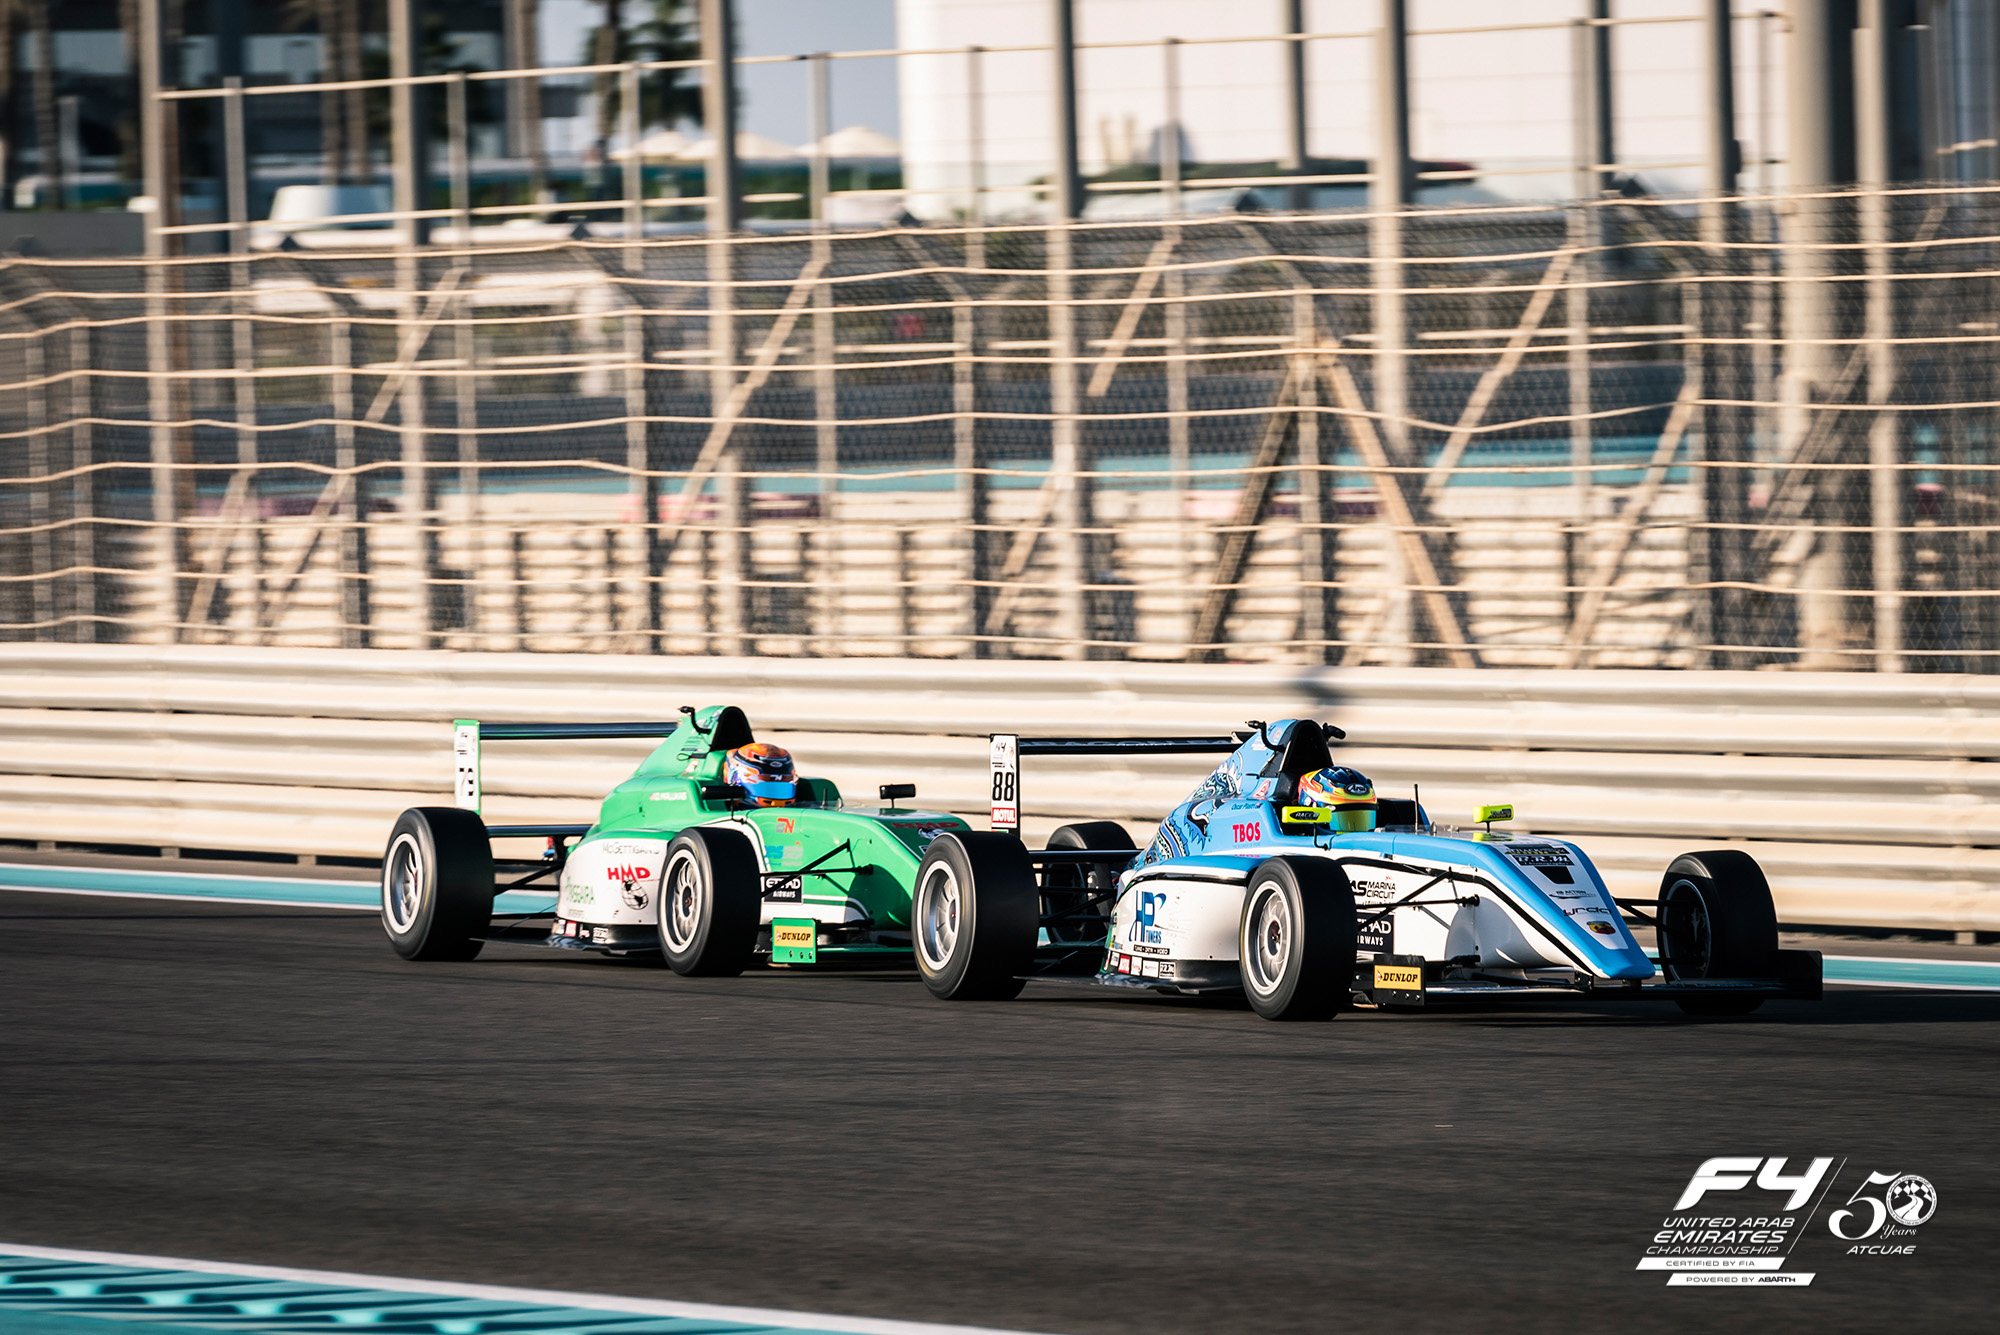 2016 12 18   F4 Second Roud   Abu Dhabi 7 Of 39